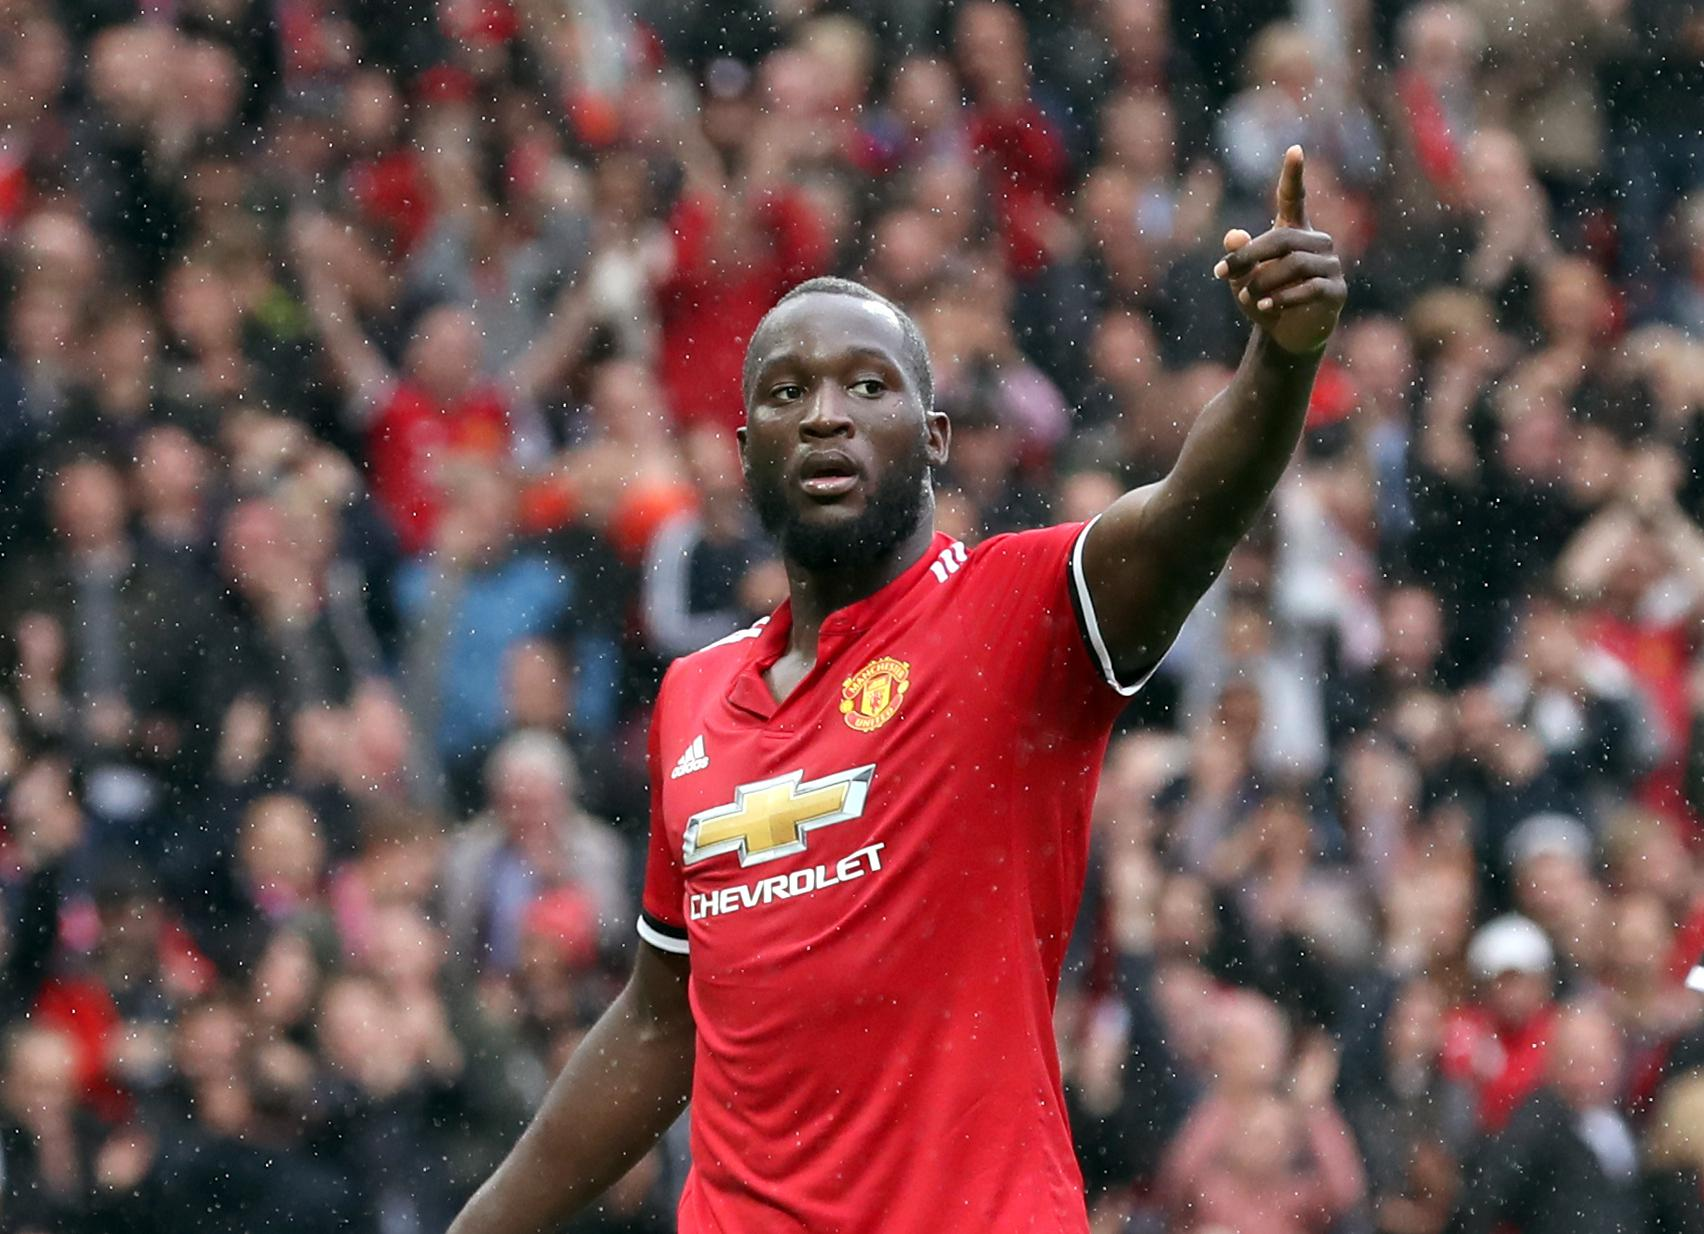 Fans have welcomed the signing of Lukaku